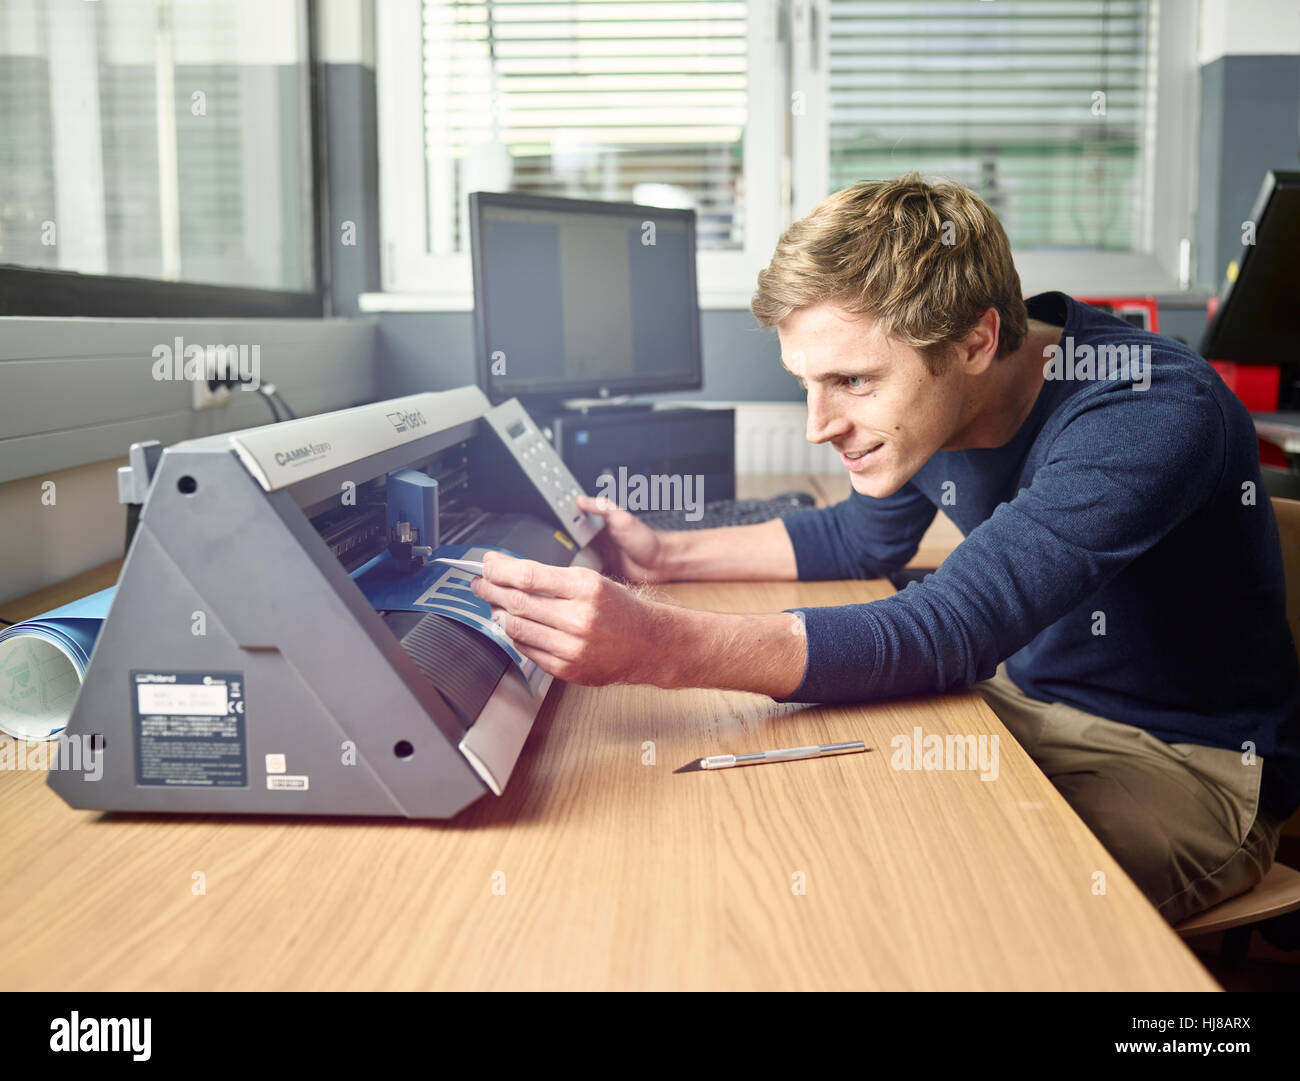 Man with foil cutter, Austria - Stock Image